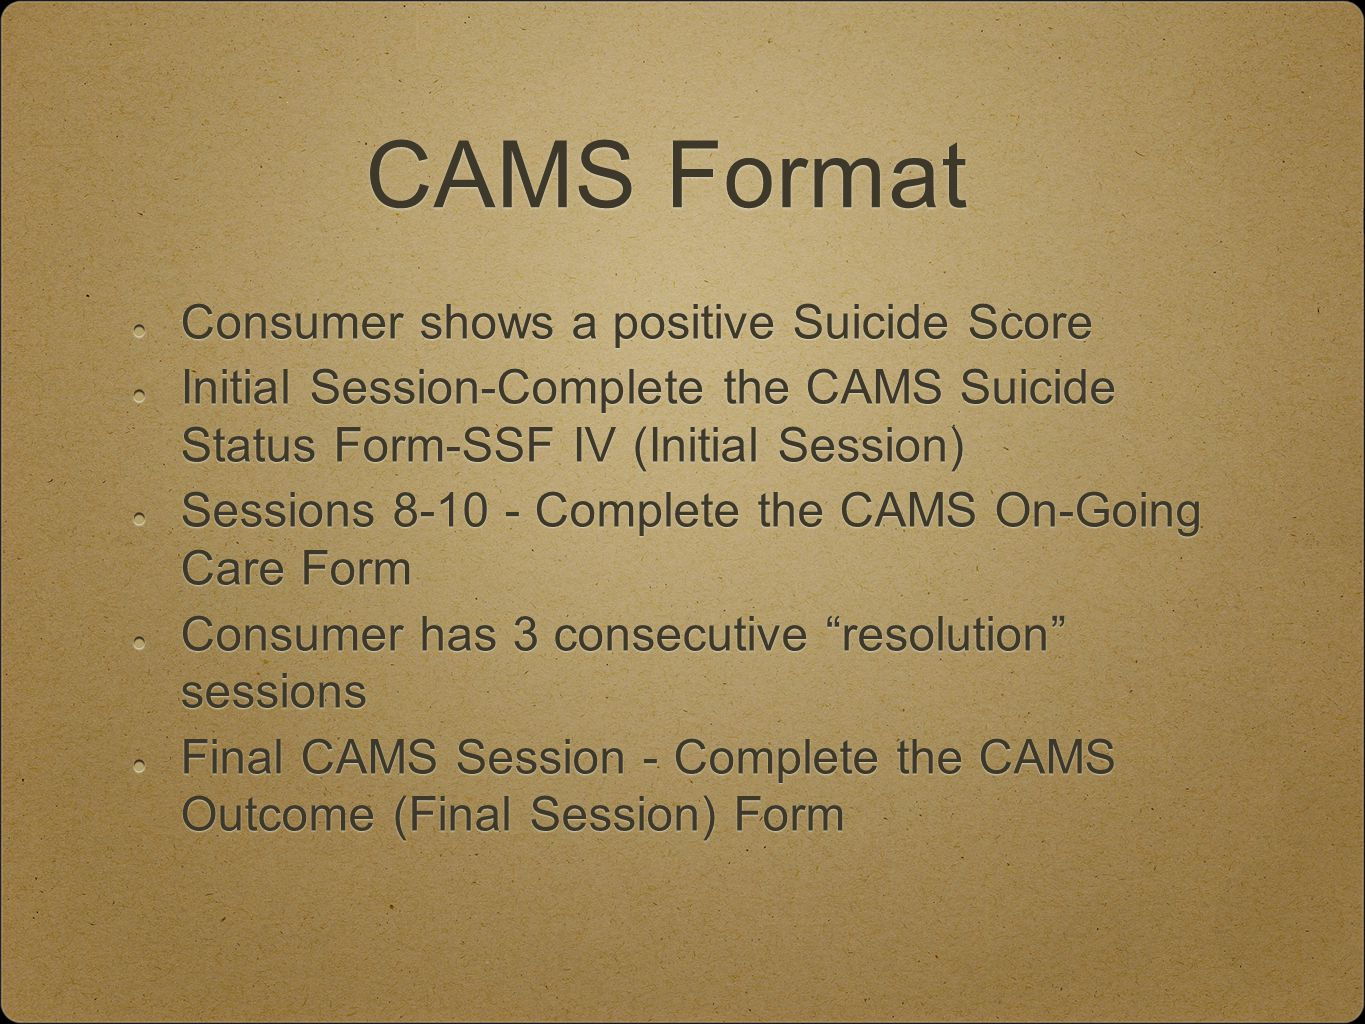 CAMS Format Consumer shows a positive Suicide Score Initial Session-Complete the CAMS Suicide Status Form-SSF IV (Initial Session) Sessions 8-10 - Complete the CAMS On-Going Care Form Consumer has 3 consecutive resolution sessions Final CAMS Session - Complete the CAMS Outcome (Final Session) Form